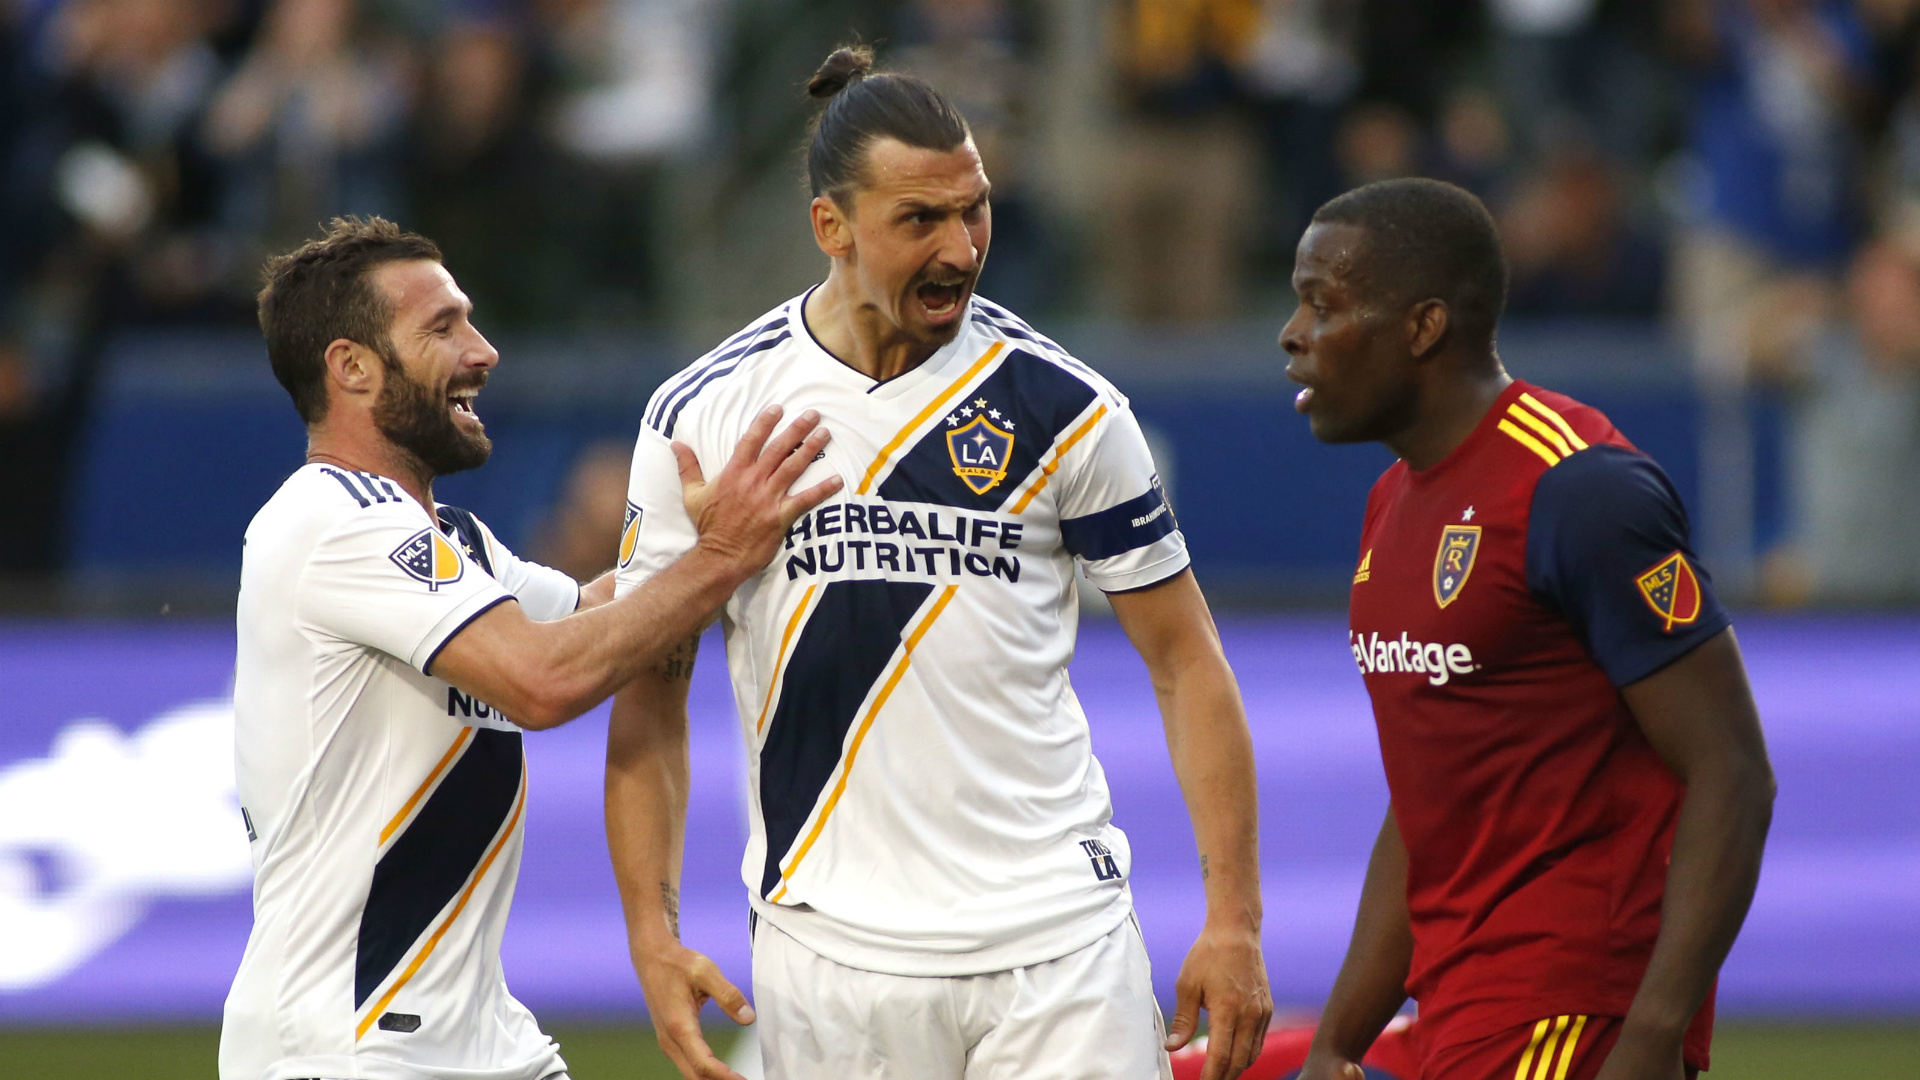 Zlatan Ibrahimovic and Nedum Onuoha didn't exit the pitch in a happy mood